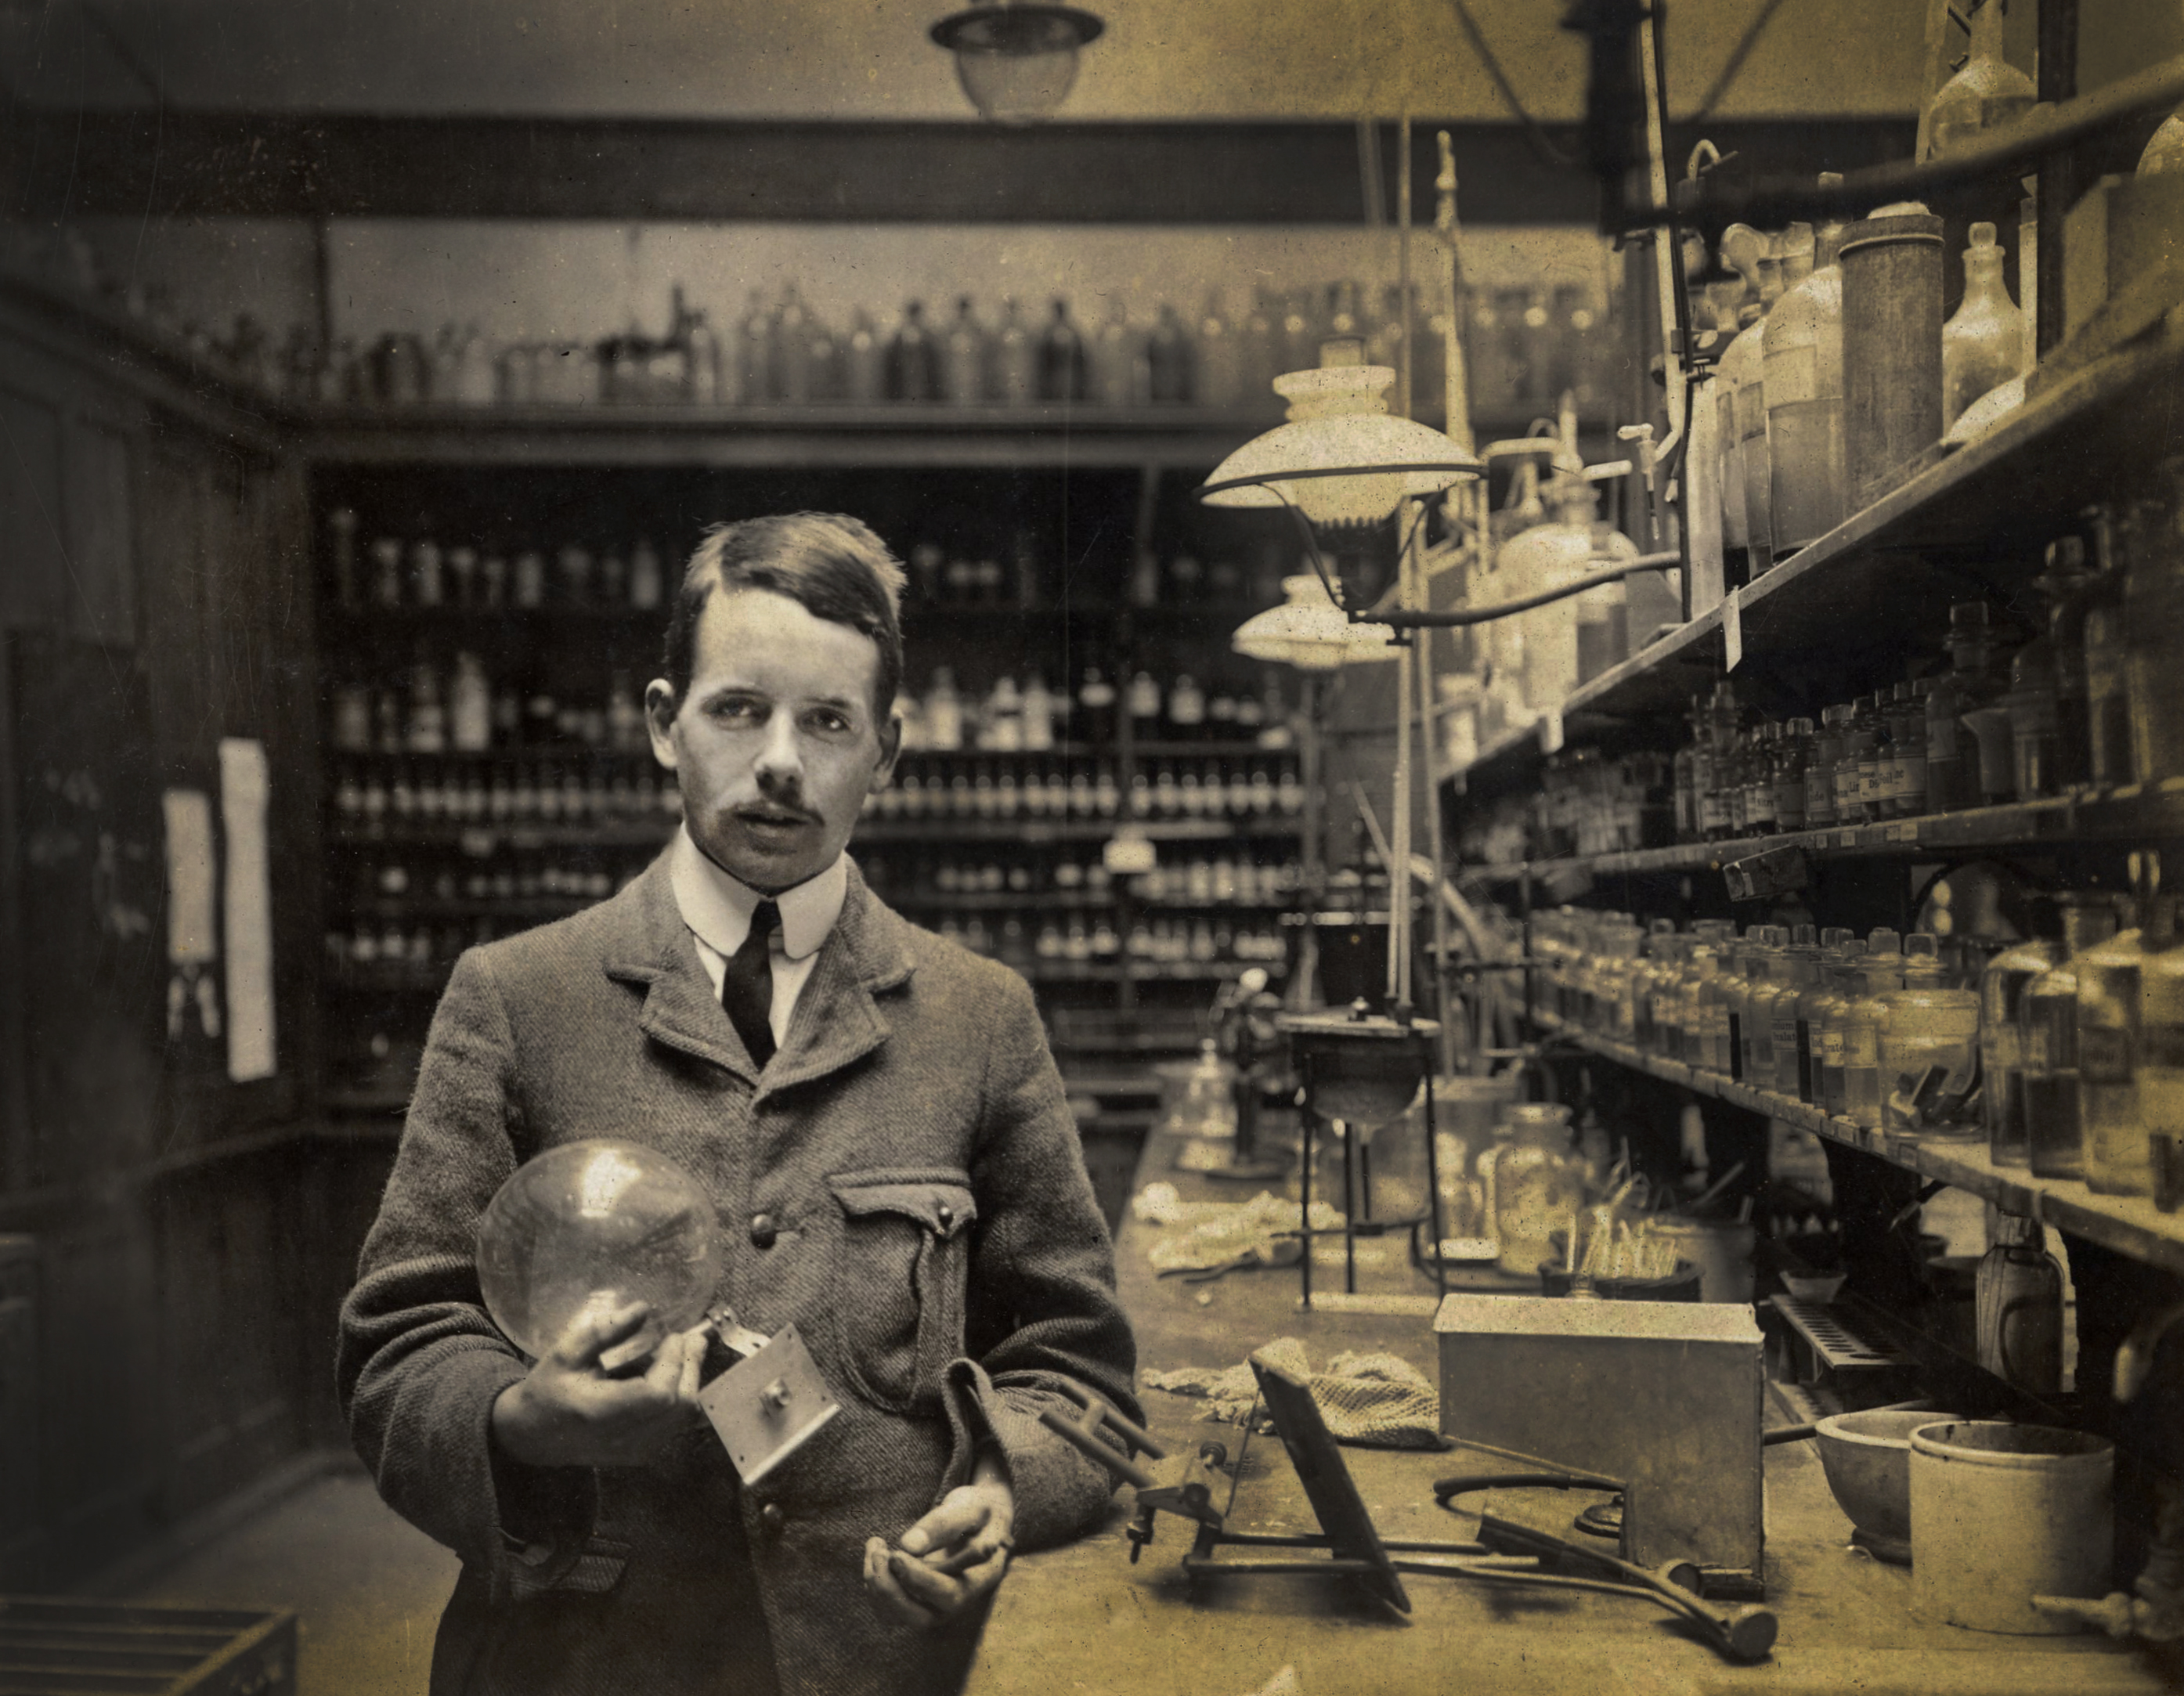 Henry moseley a scientist lost to war defence science 18874 moseleylaboratory ki 1 gamestrikefo Choice Image